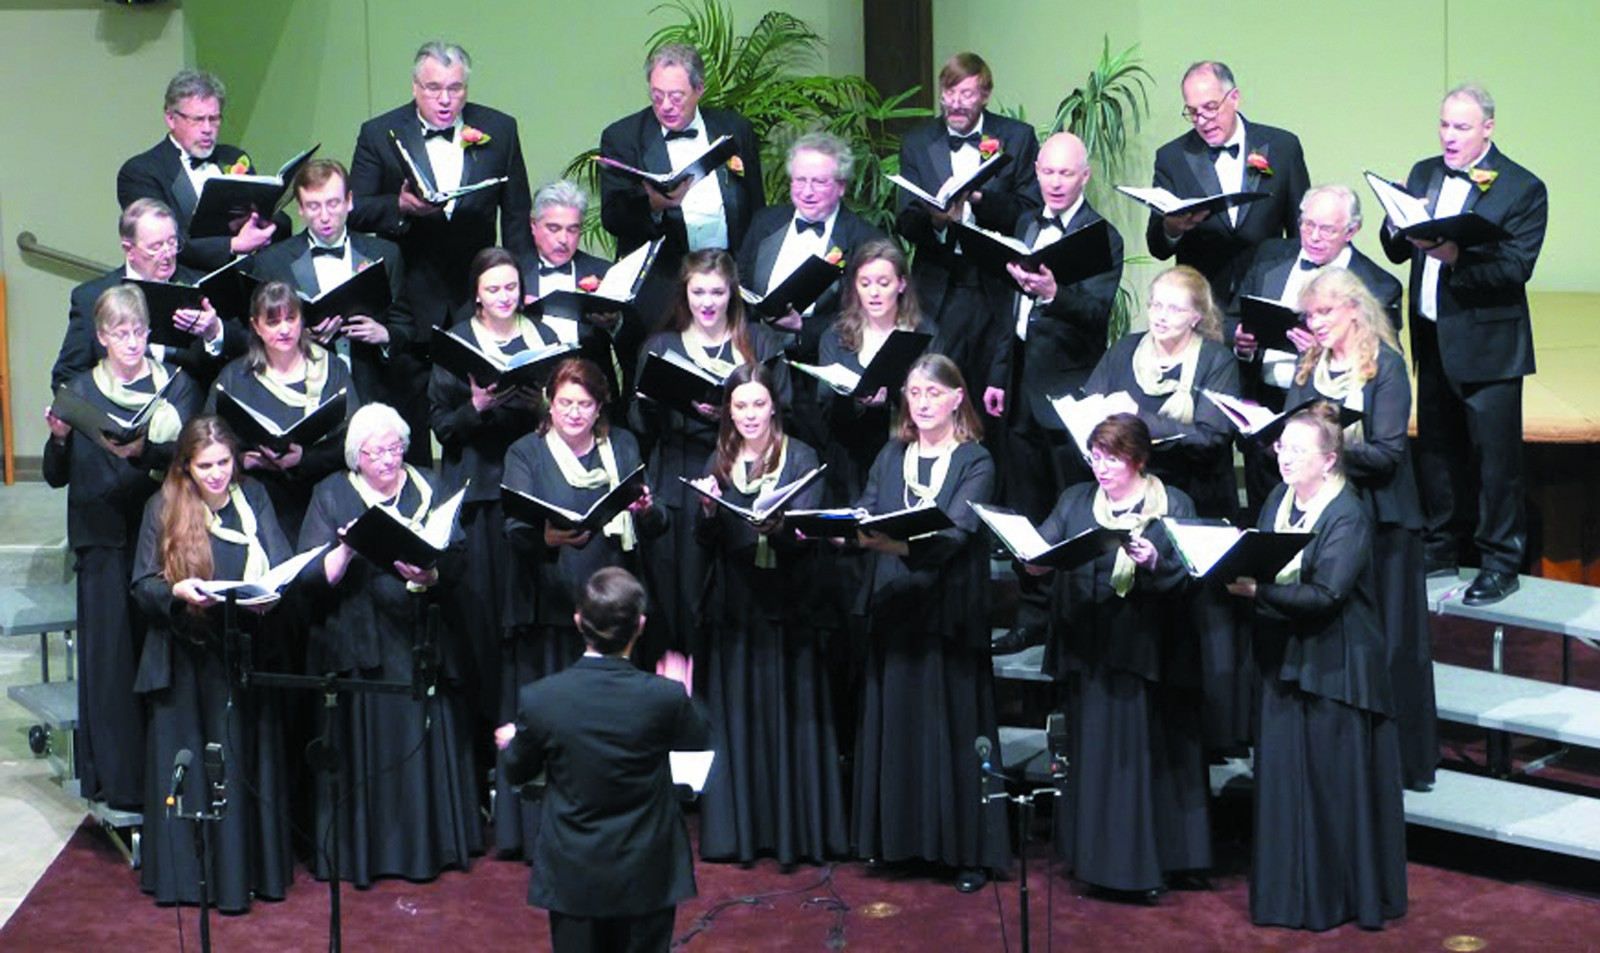 Bellevue Chamber Chorus. Bellevue Chamber Chorus, March 2016